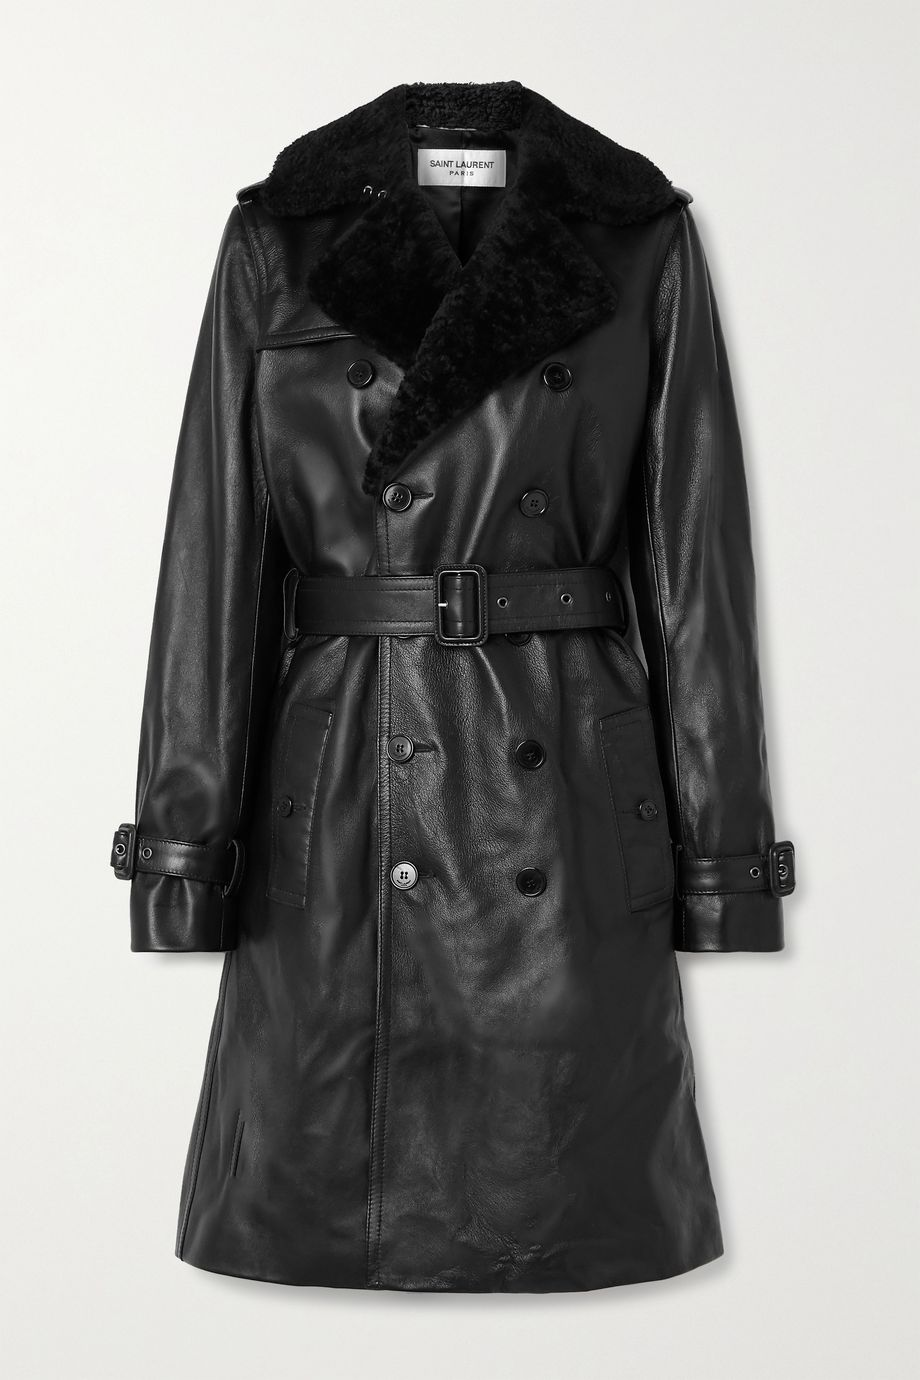 SAINT LAURENT Shearling-trimmed leather trench coat